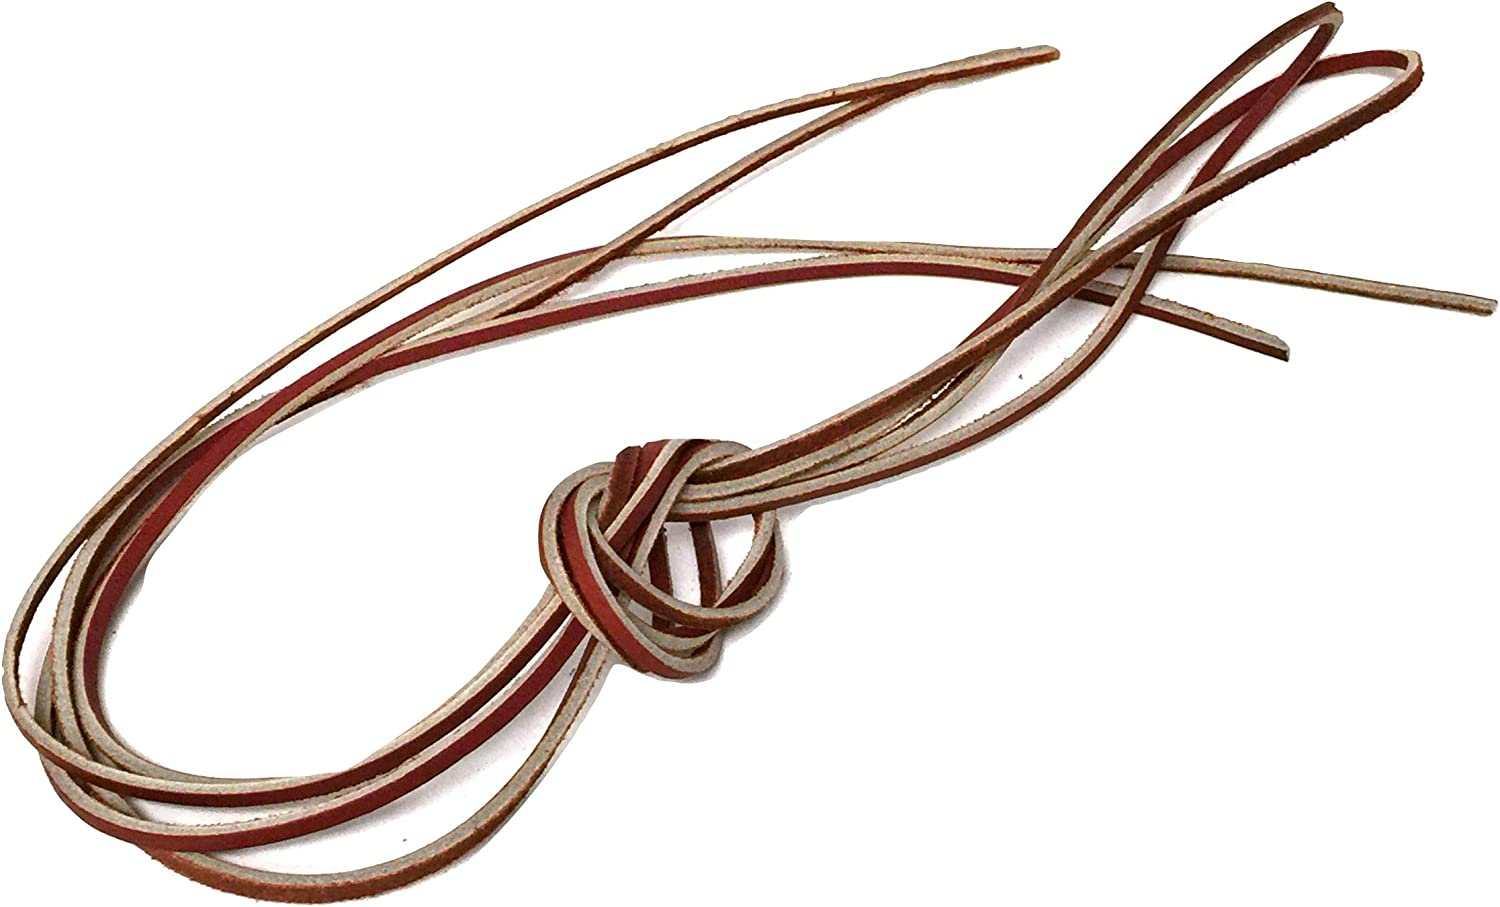 Rawhide Leather Boot Manufacturer direct delivery Shoe Laces Limited price sale Red Tan 62